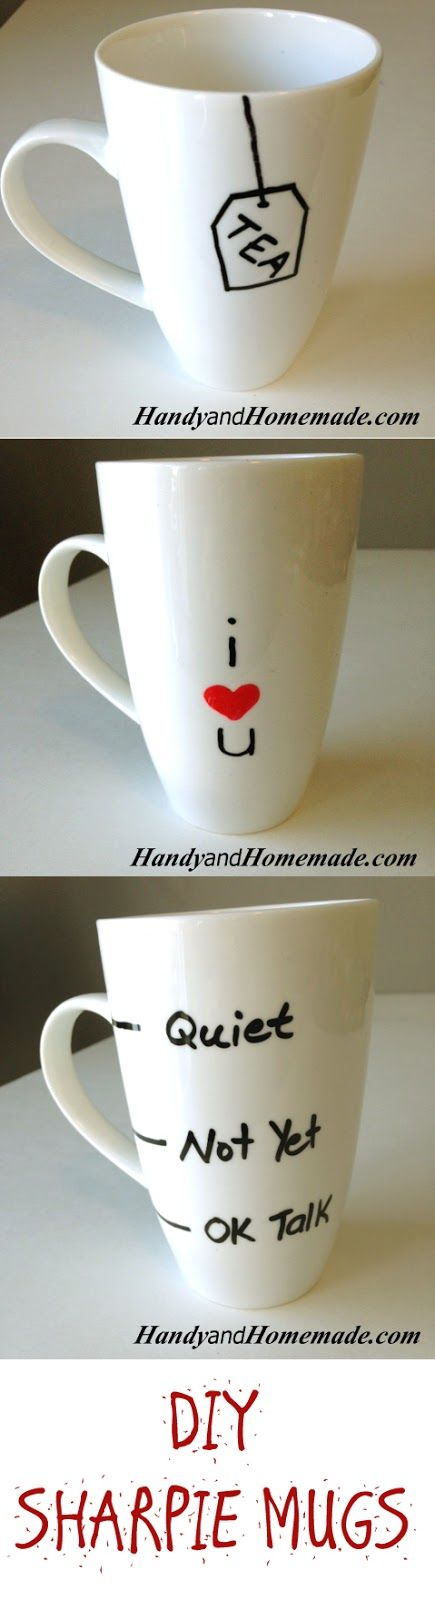 How To Make Sharpie Mugs DIY